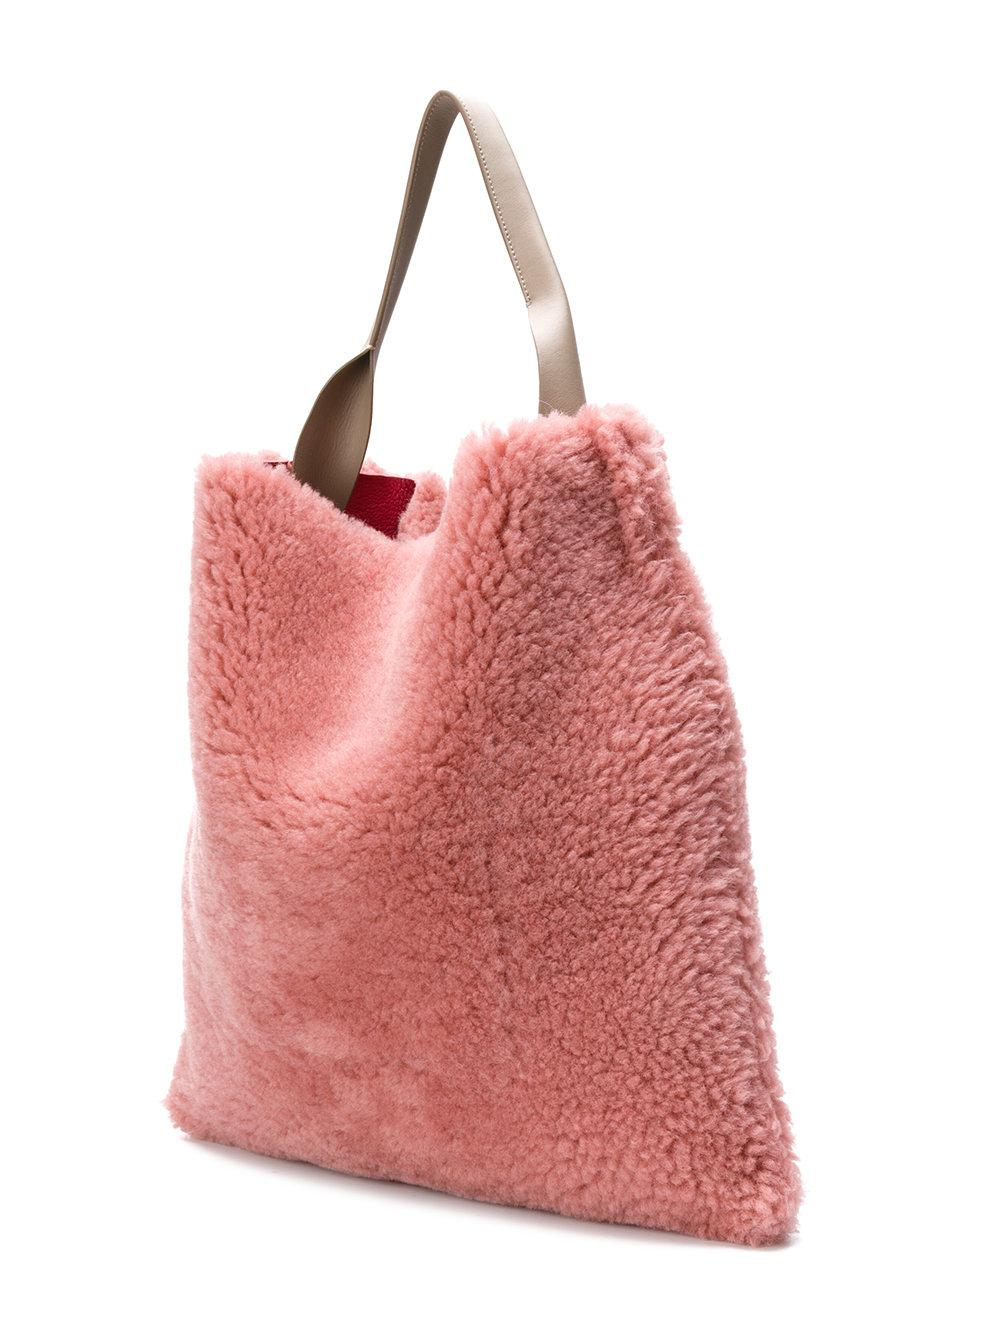 c497e93a76 Jil Sander Xiao Shearling Tote in Pink - Lyst